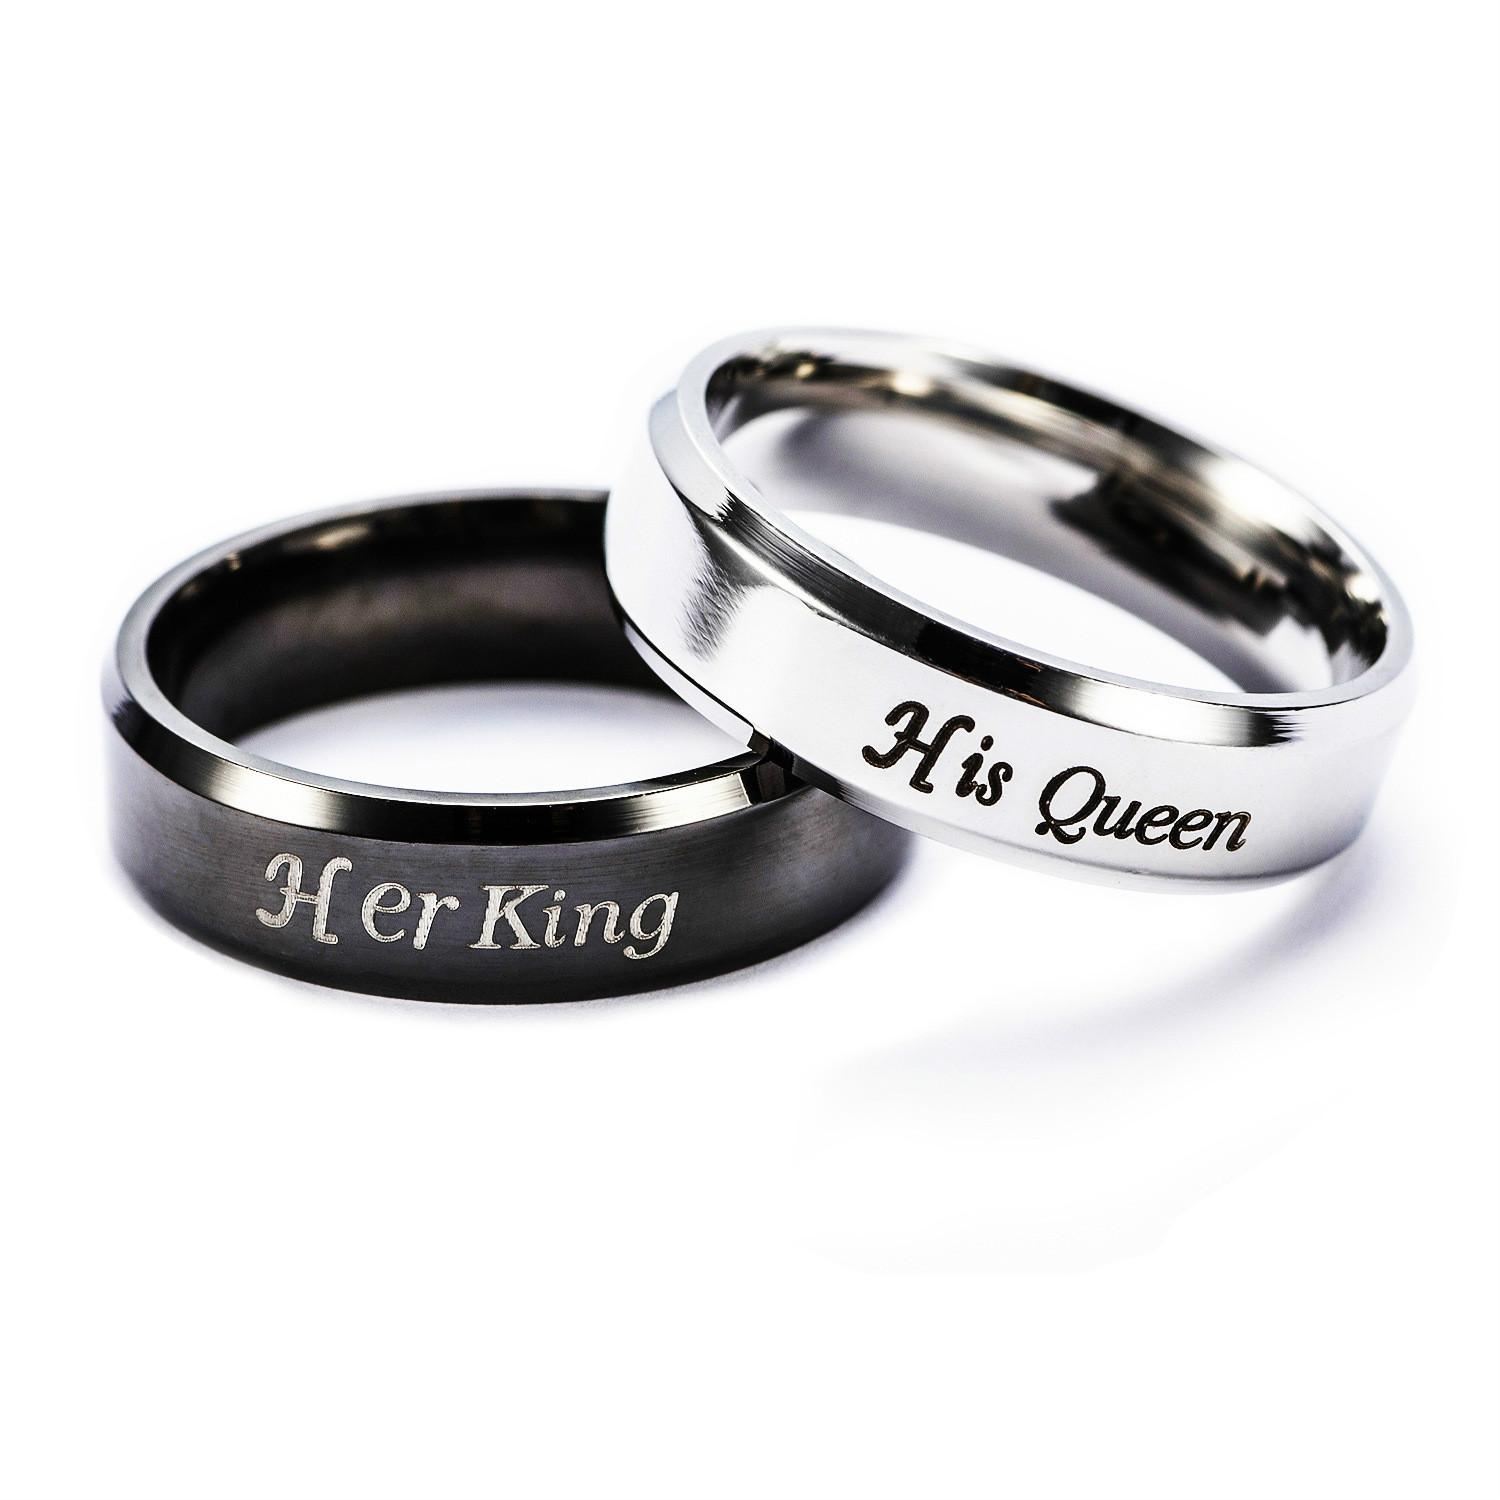 ireland rings photo awesome wedding mens ricksalerealty titanium com best ring of irish bands